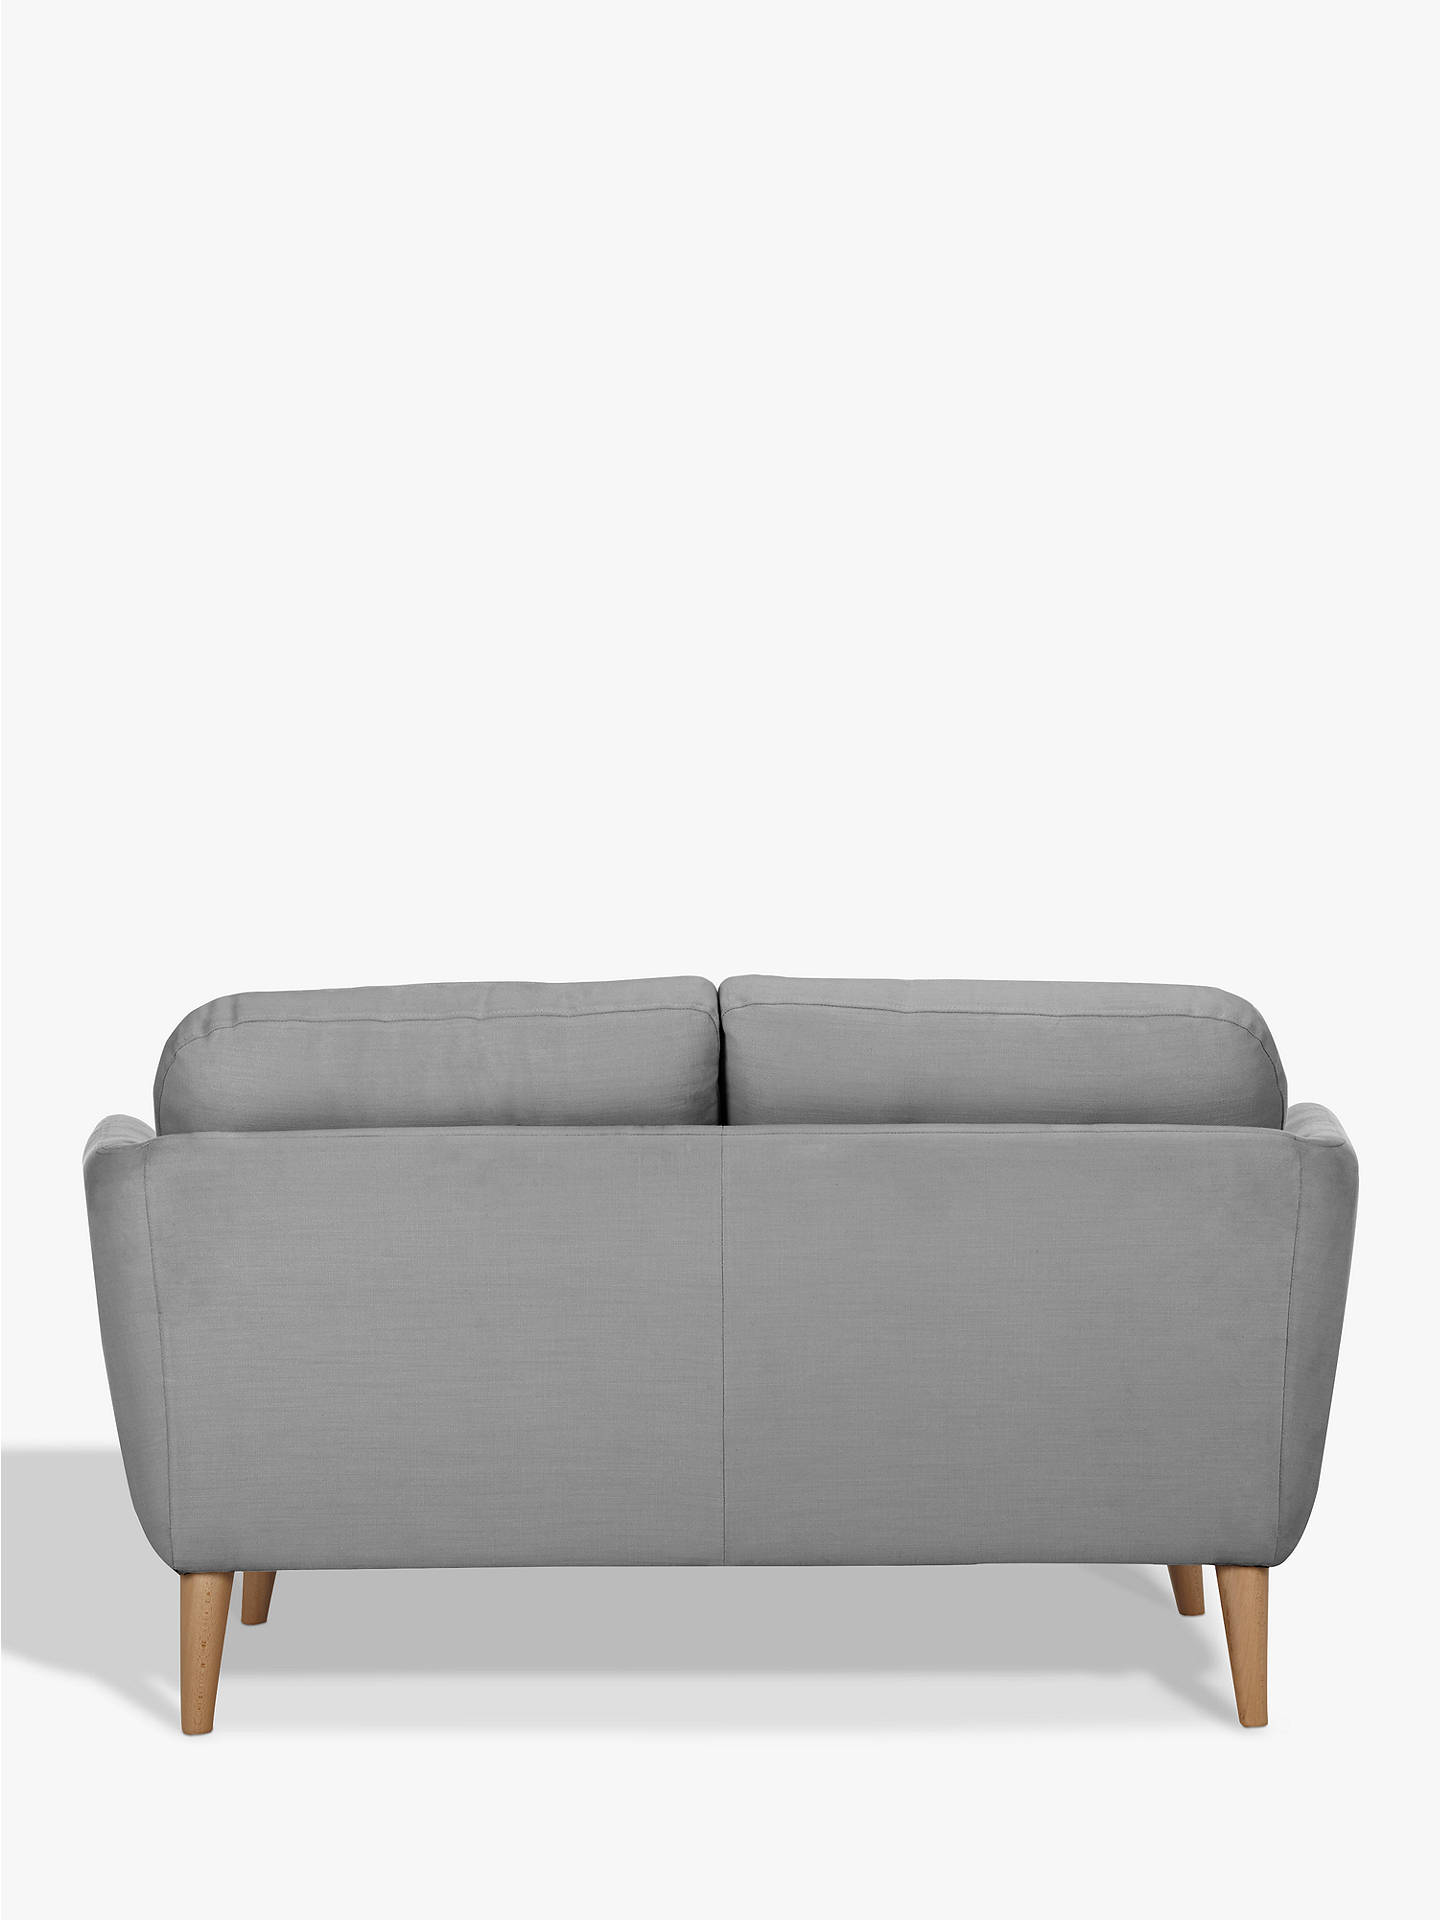 BuyHouse by John Lewis Arlo Small 2 Seater Sofa, Light Leg, Erin Midnight Online at johnlewis.com